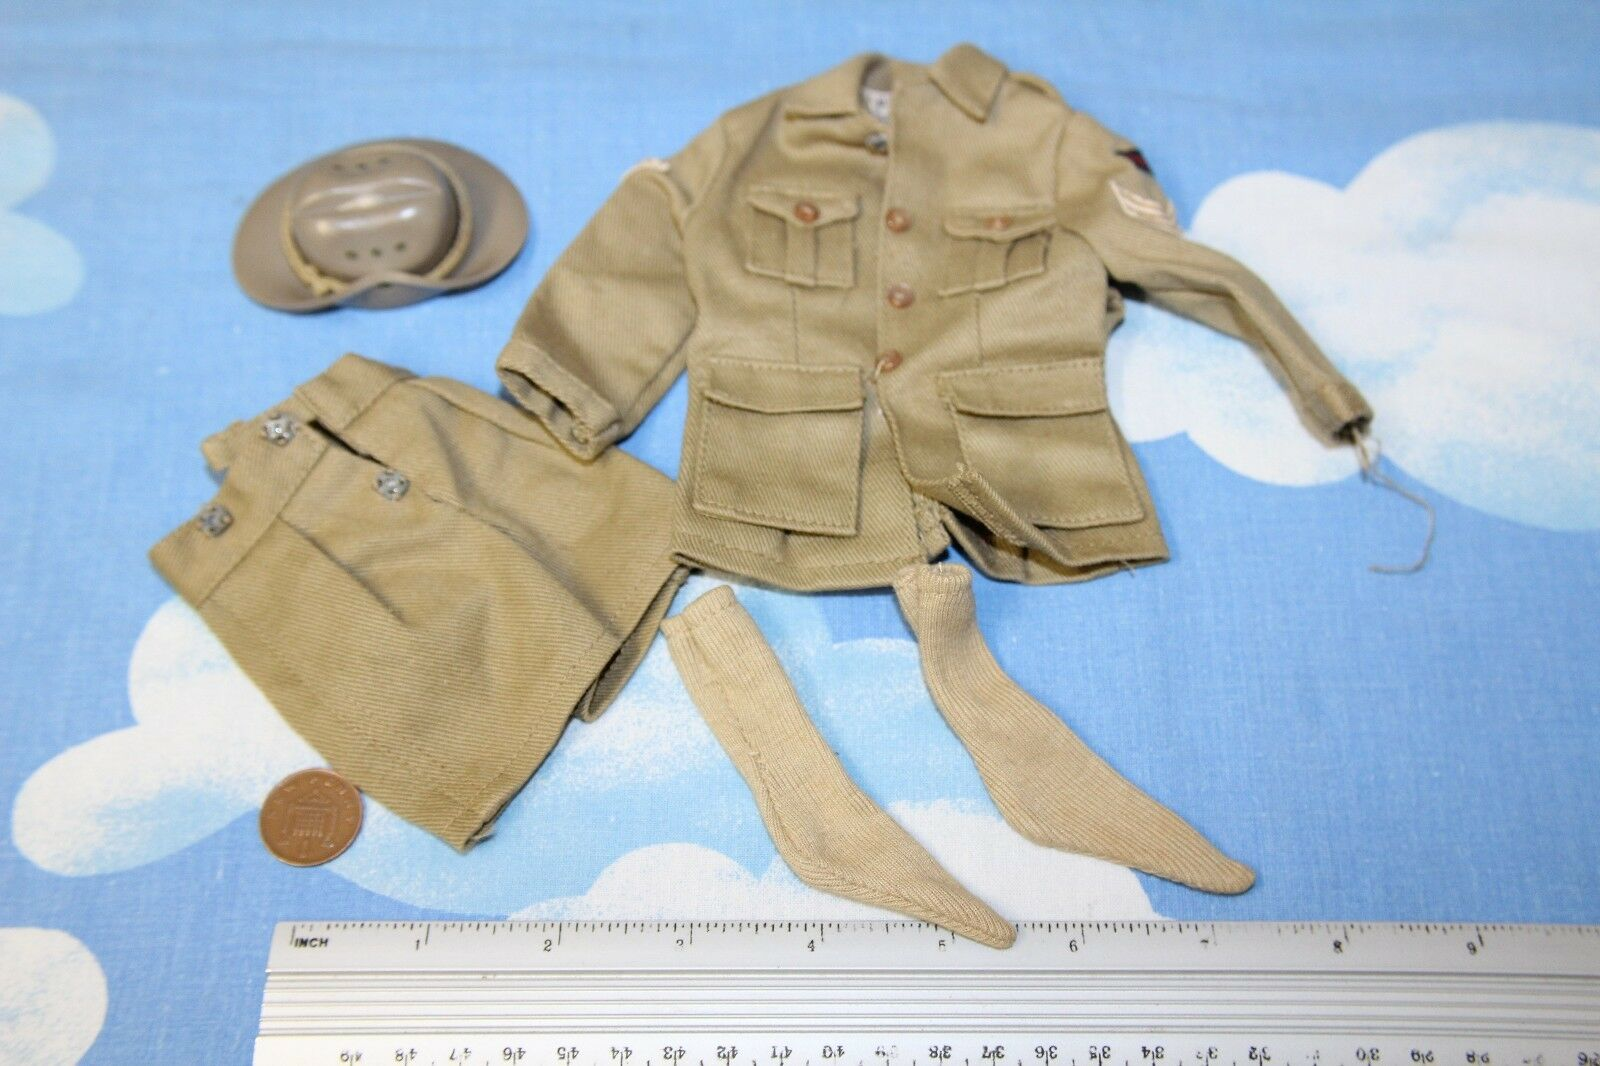 ORIGINAL VINTAGE ACTION MAN EARLY ISSUE AUSTRALIAN JUNGLE FIGHTER OUTFIT CB30658